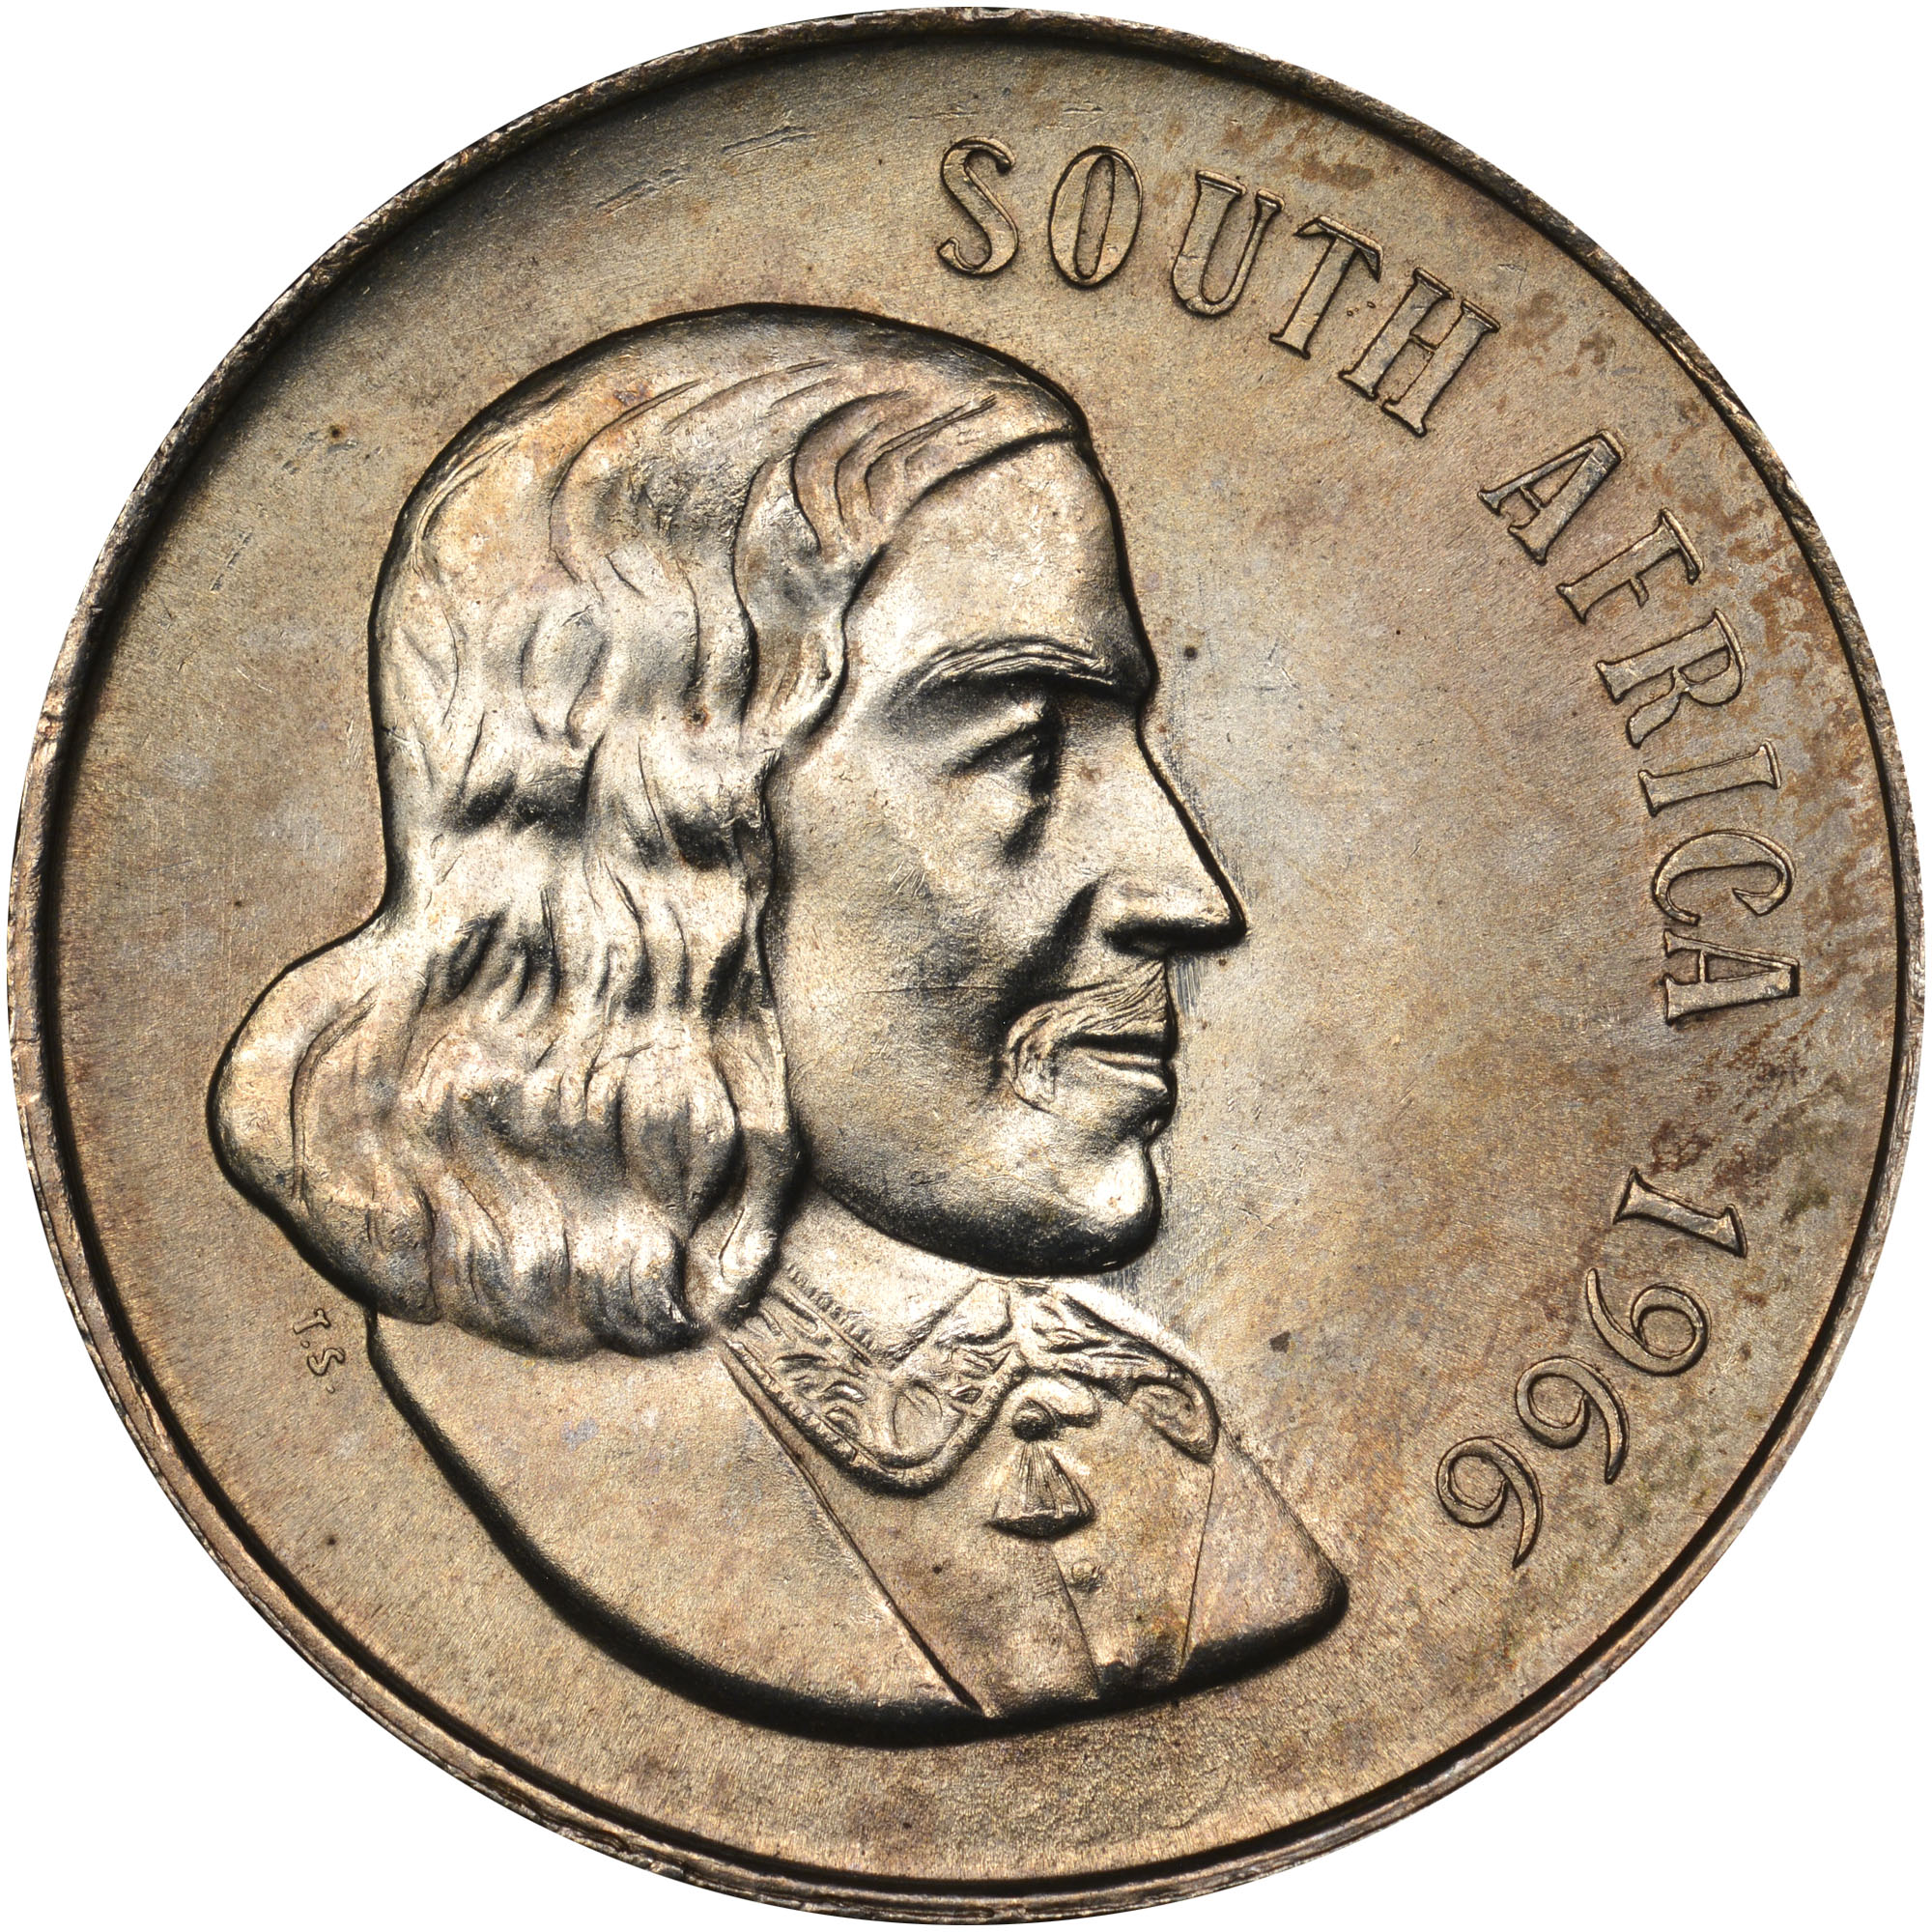 South Africa Rand Km 71 1 Prices Amp Values